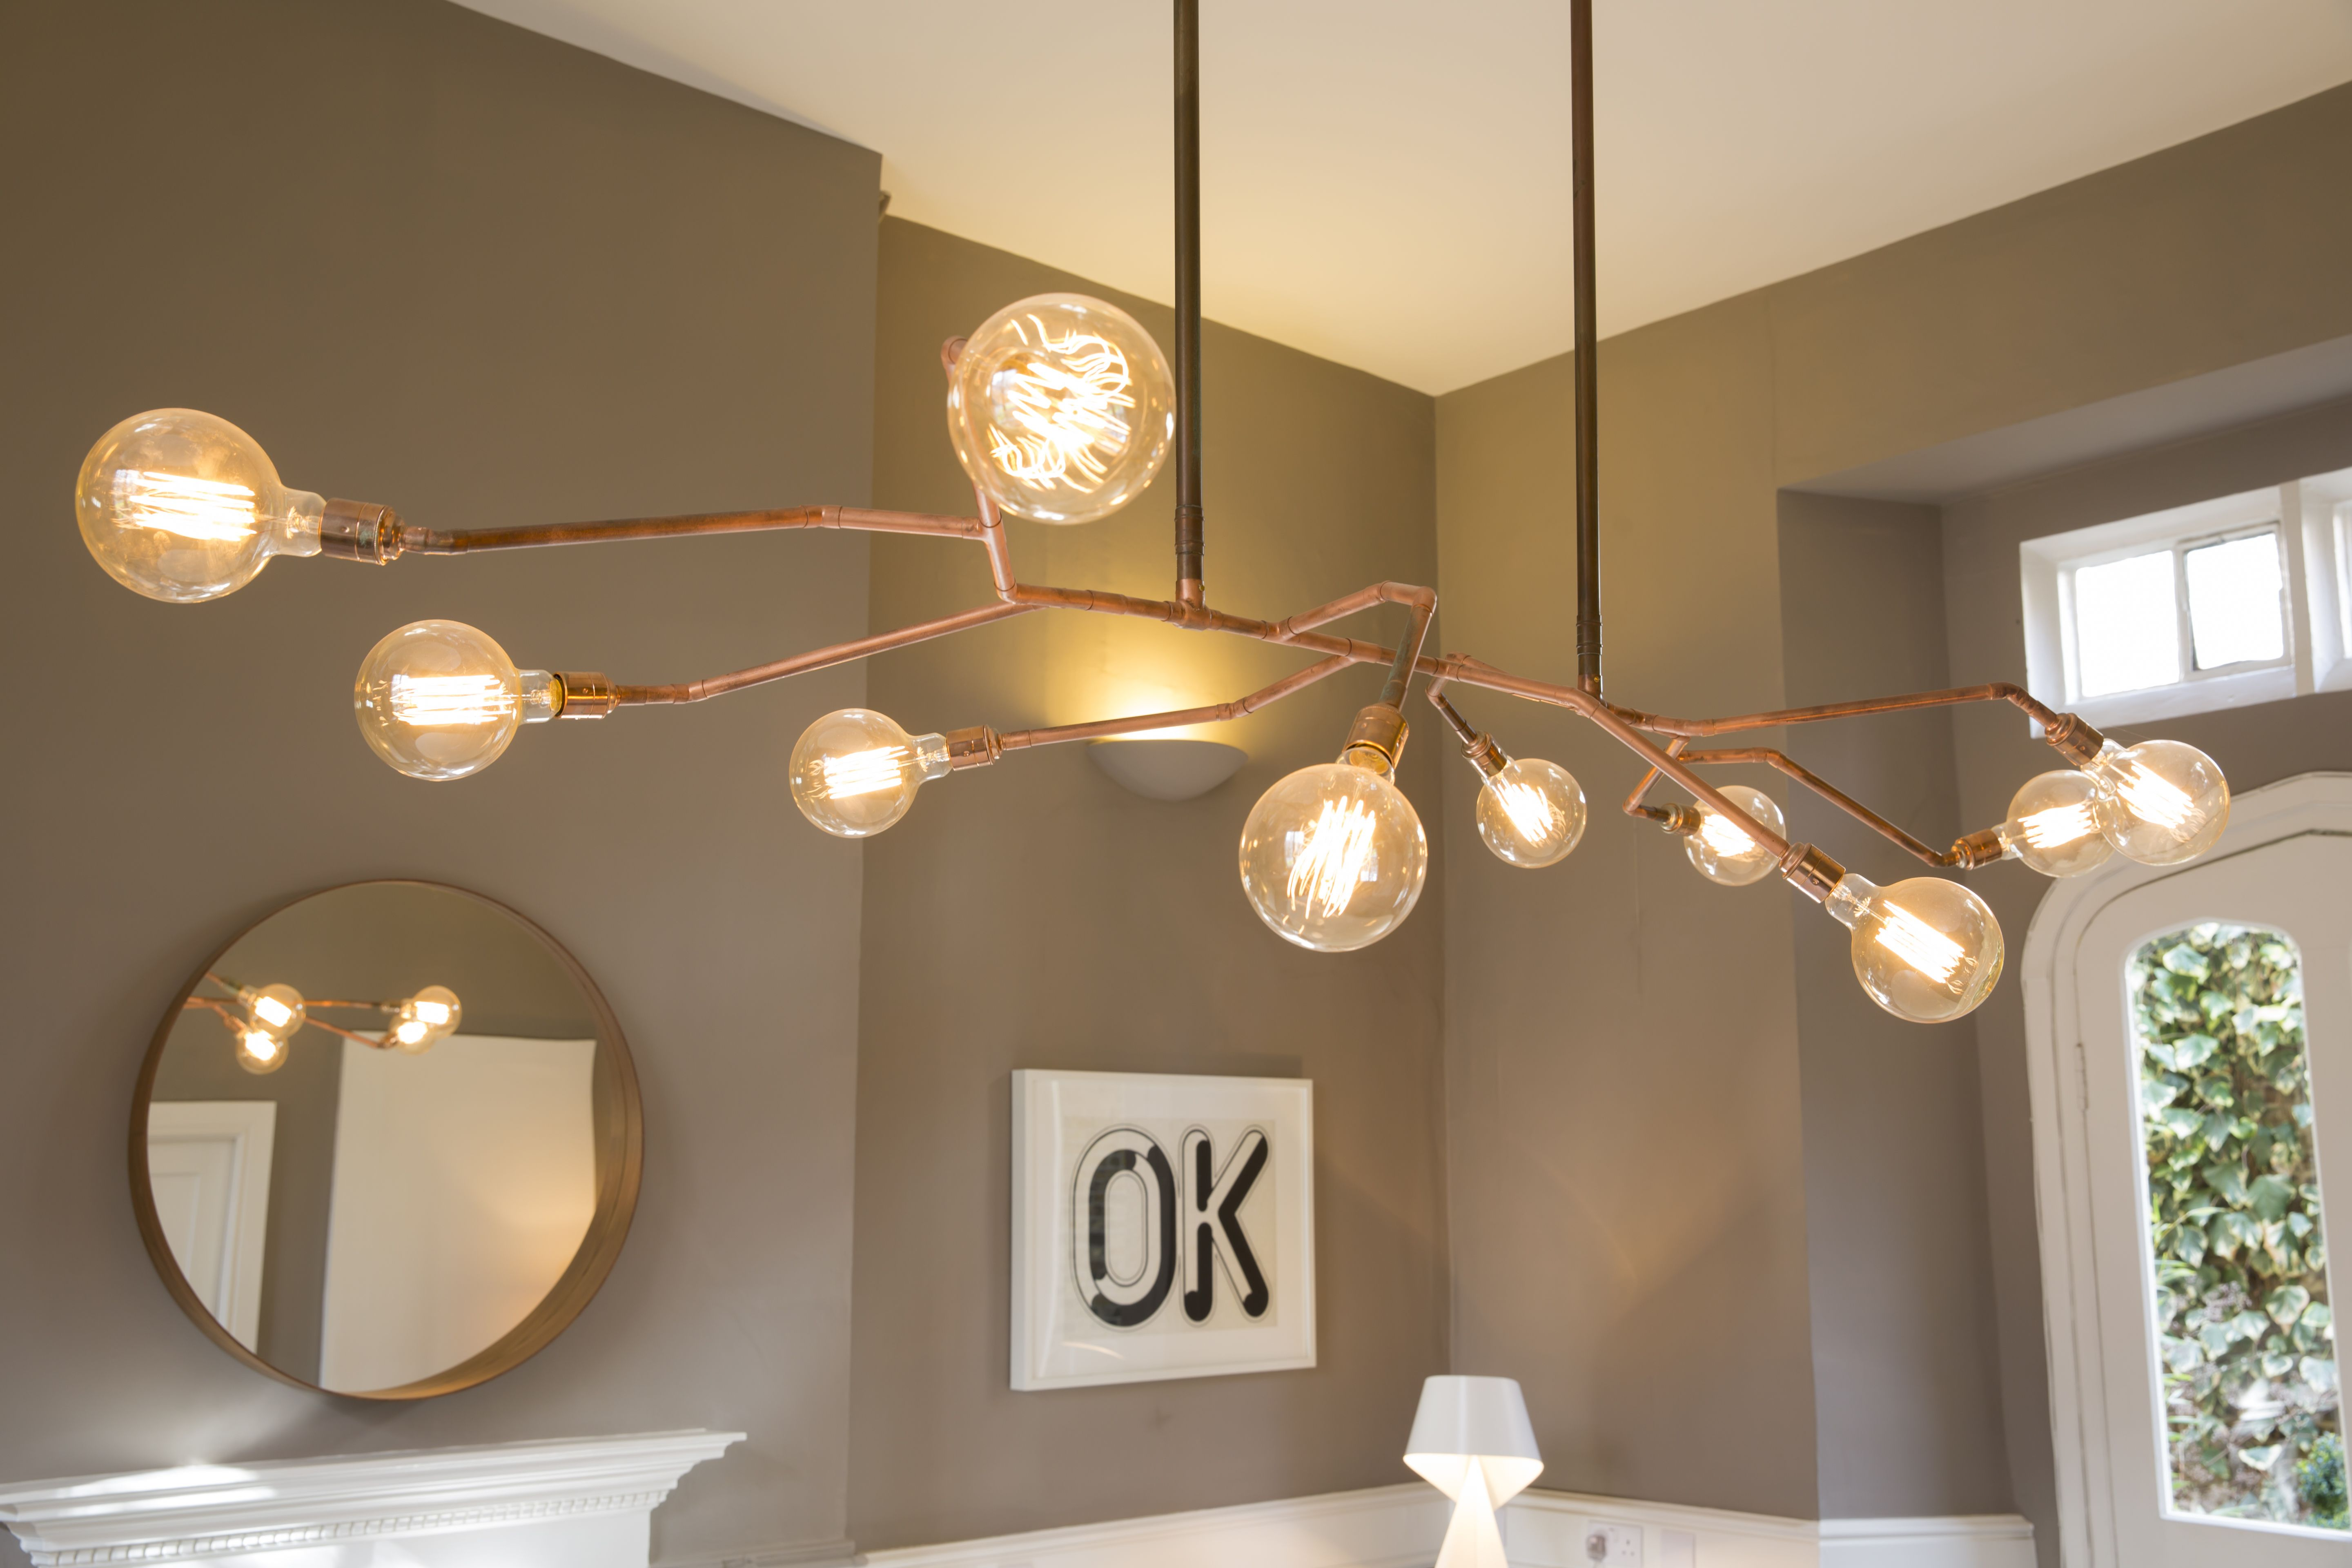 Close Up Of Our Copper Tube Chandelier We Made For Manasian And Co S Meeting Room Chandelier Ceiling Lights Copper Tubing